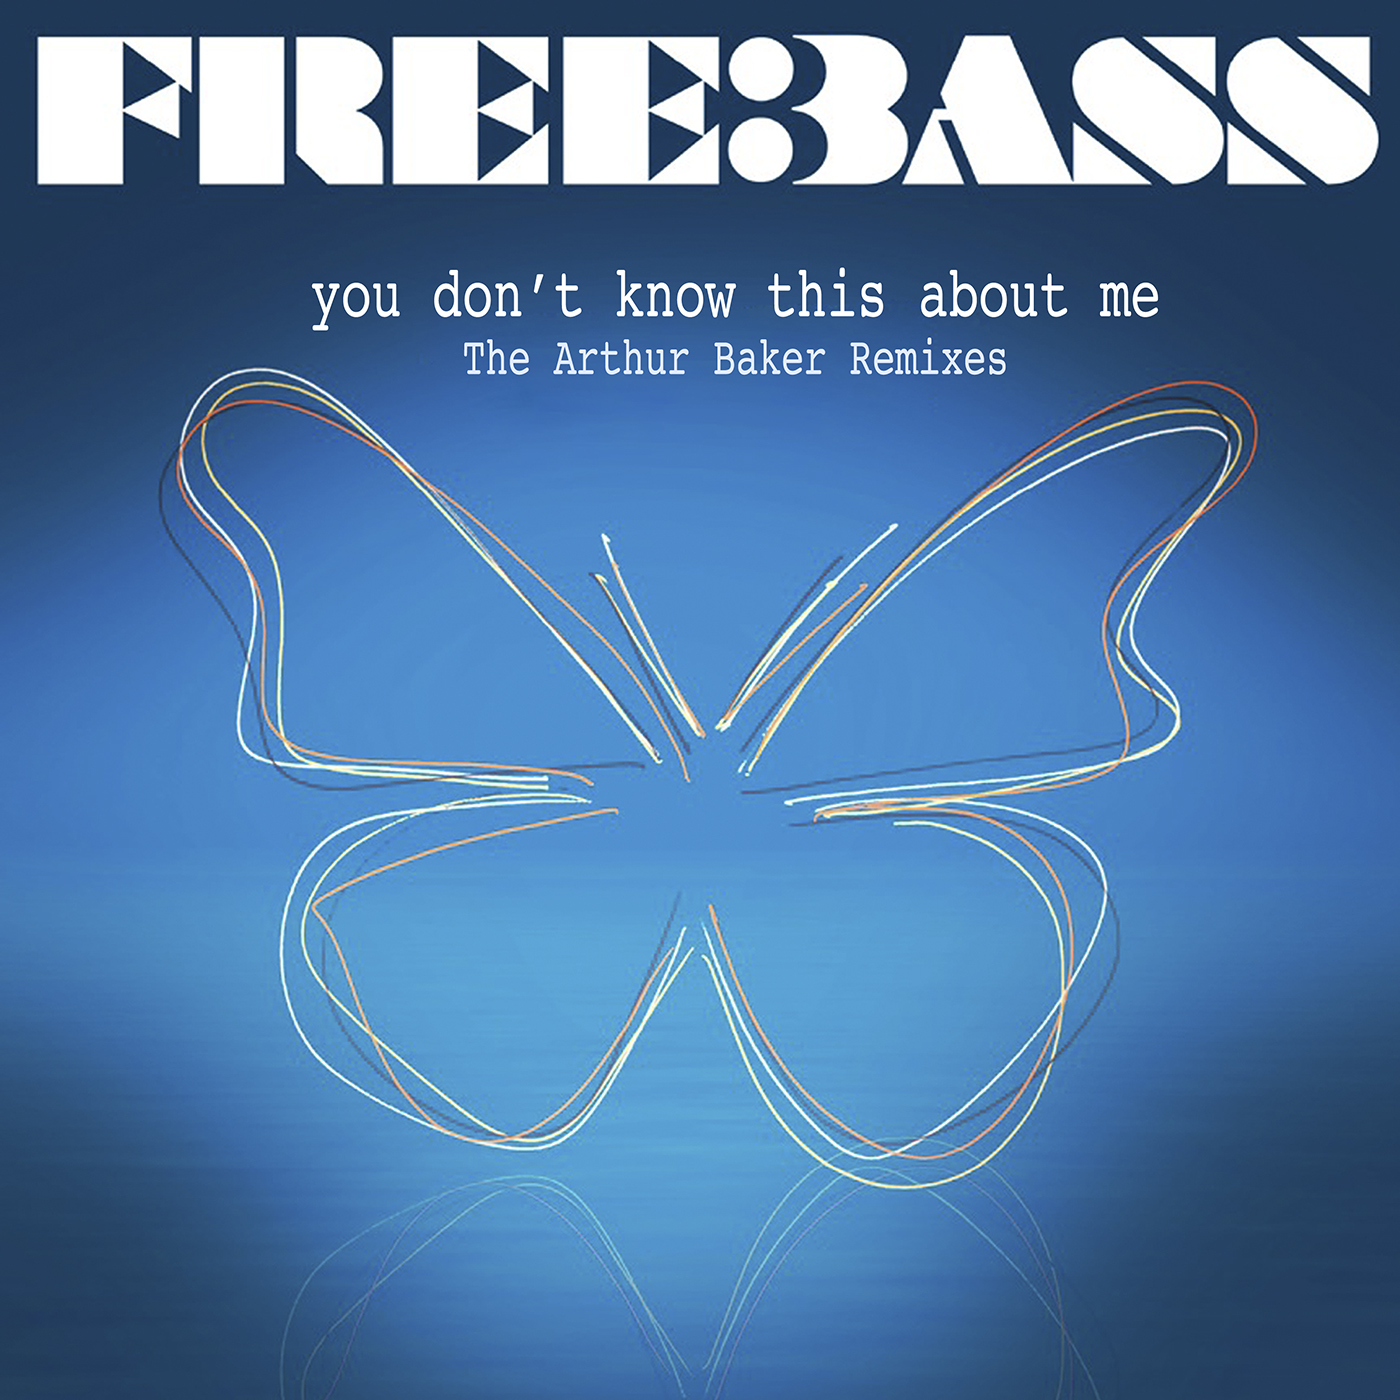 Audio: Freebass' 'You Don't Know This About Me' (Arthur Baker Mix), with Tim Burgess